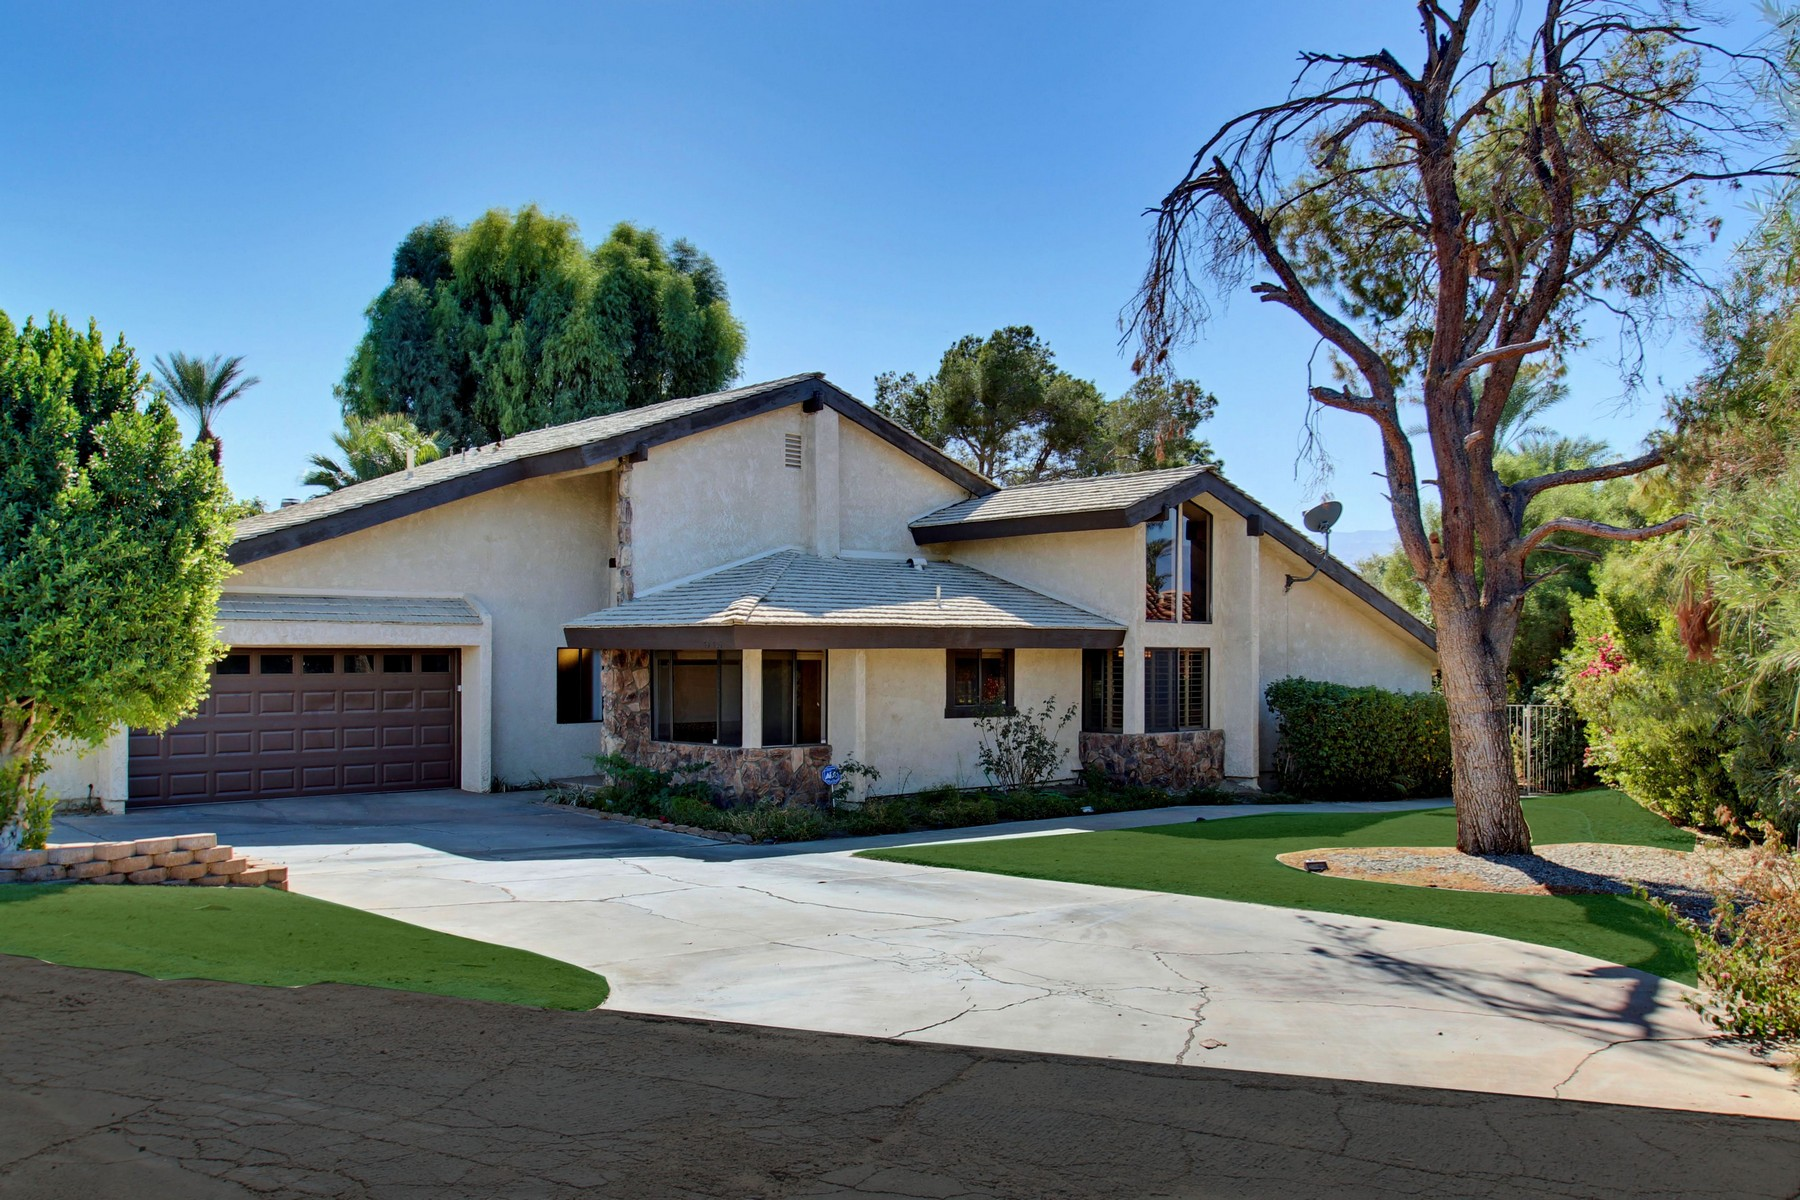 Single Family Home for Sale at 79705 Bermuda Dunes Bermuda Dunes, California 92201 United States